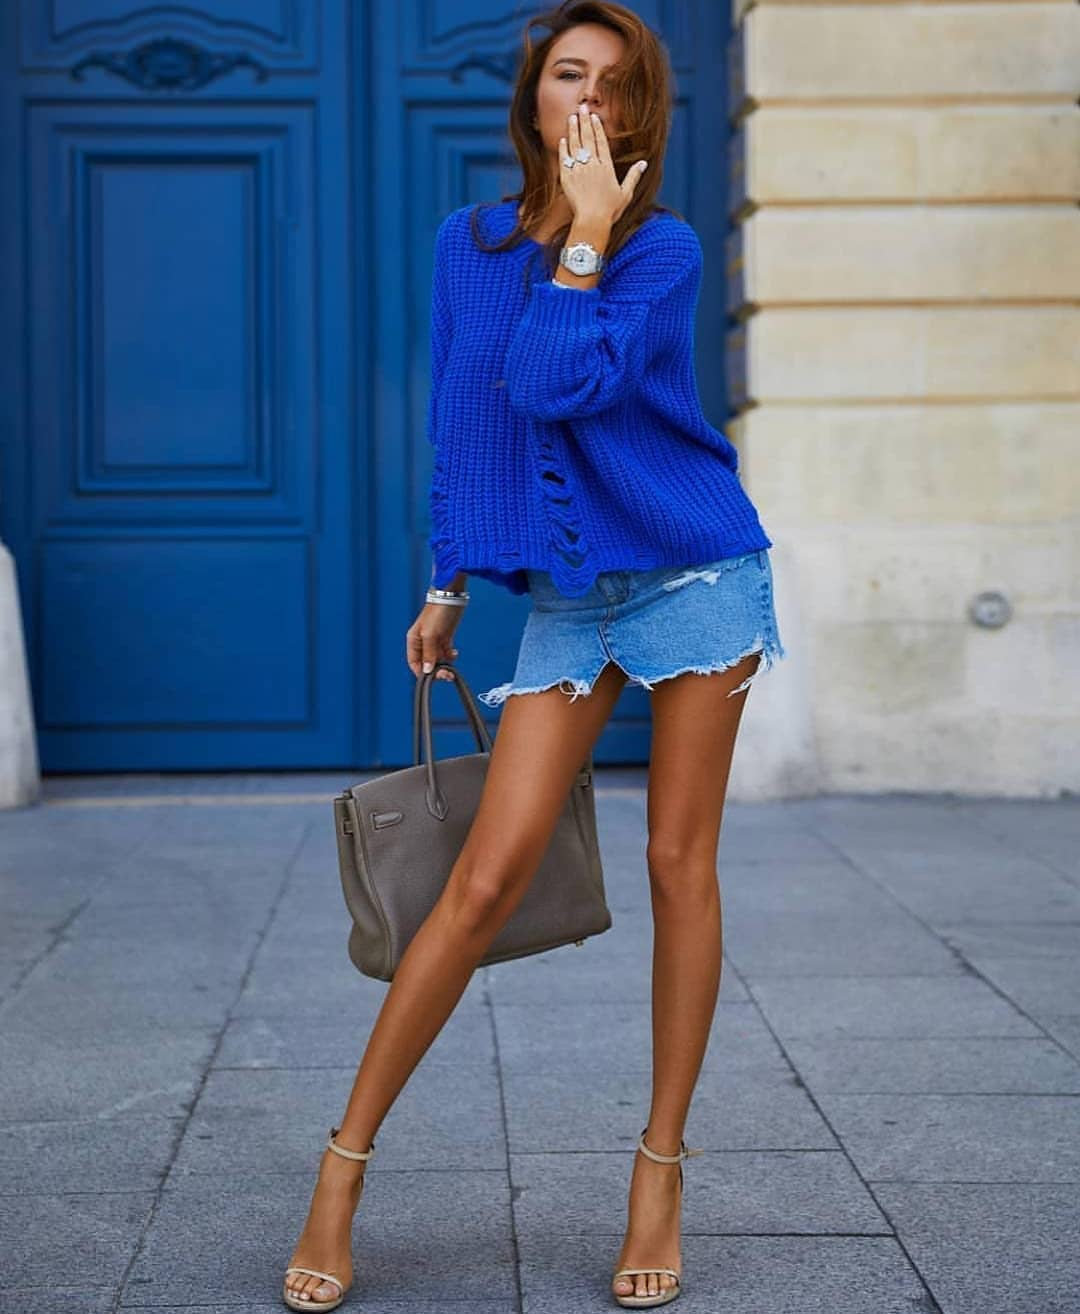 Bright Blue Oversized Sweater For Spring: Cool Knitwear To Wear Now 2019